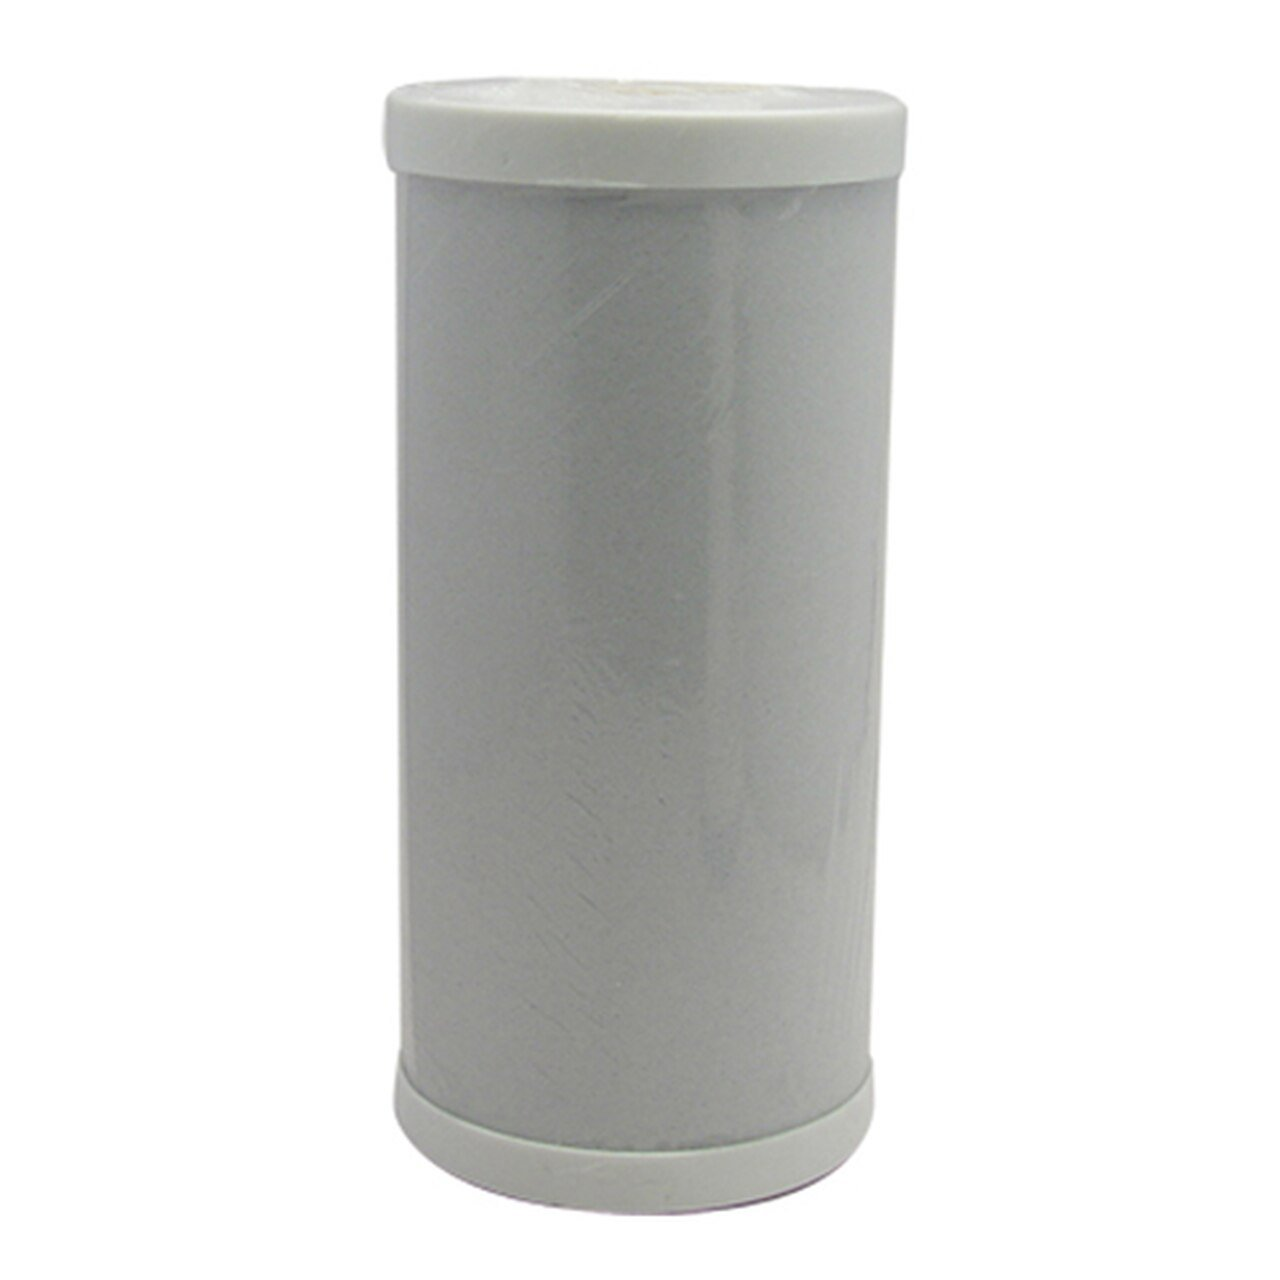 Aqua-Pure 56027-01 25Micron 10Gpm Polyethylene Outer Shell Particulate/Rust/Chlorine Taste And Odor Water Filter Cartridge